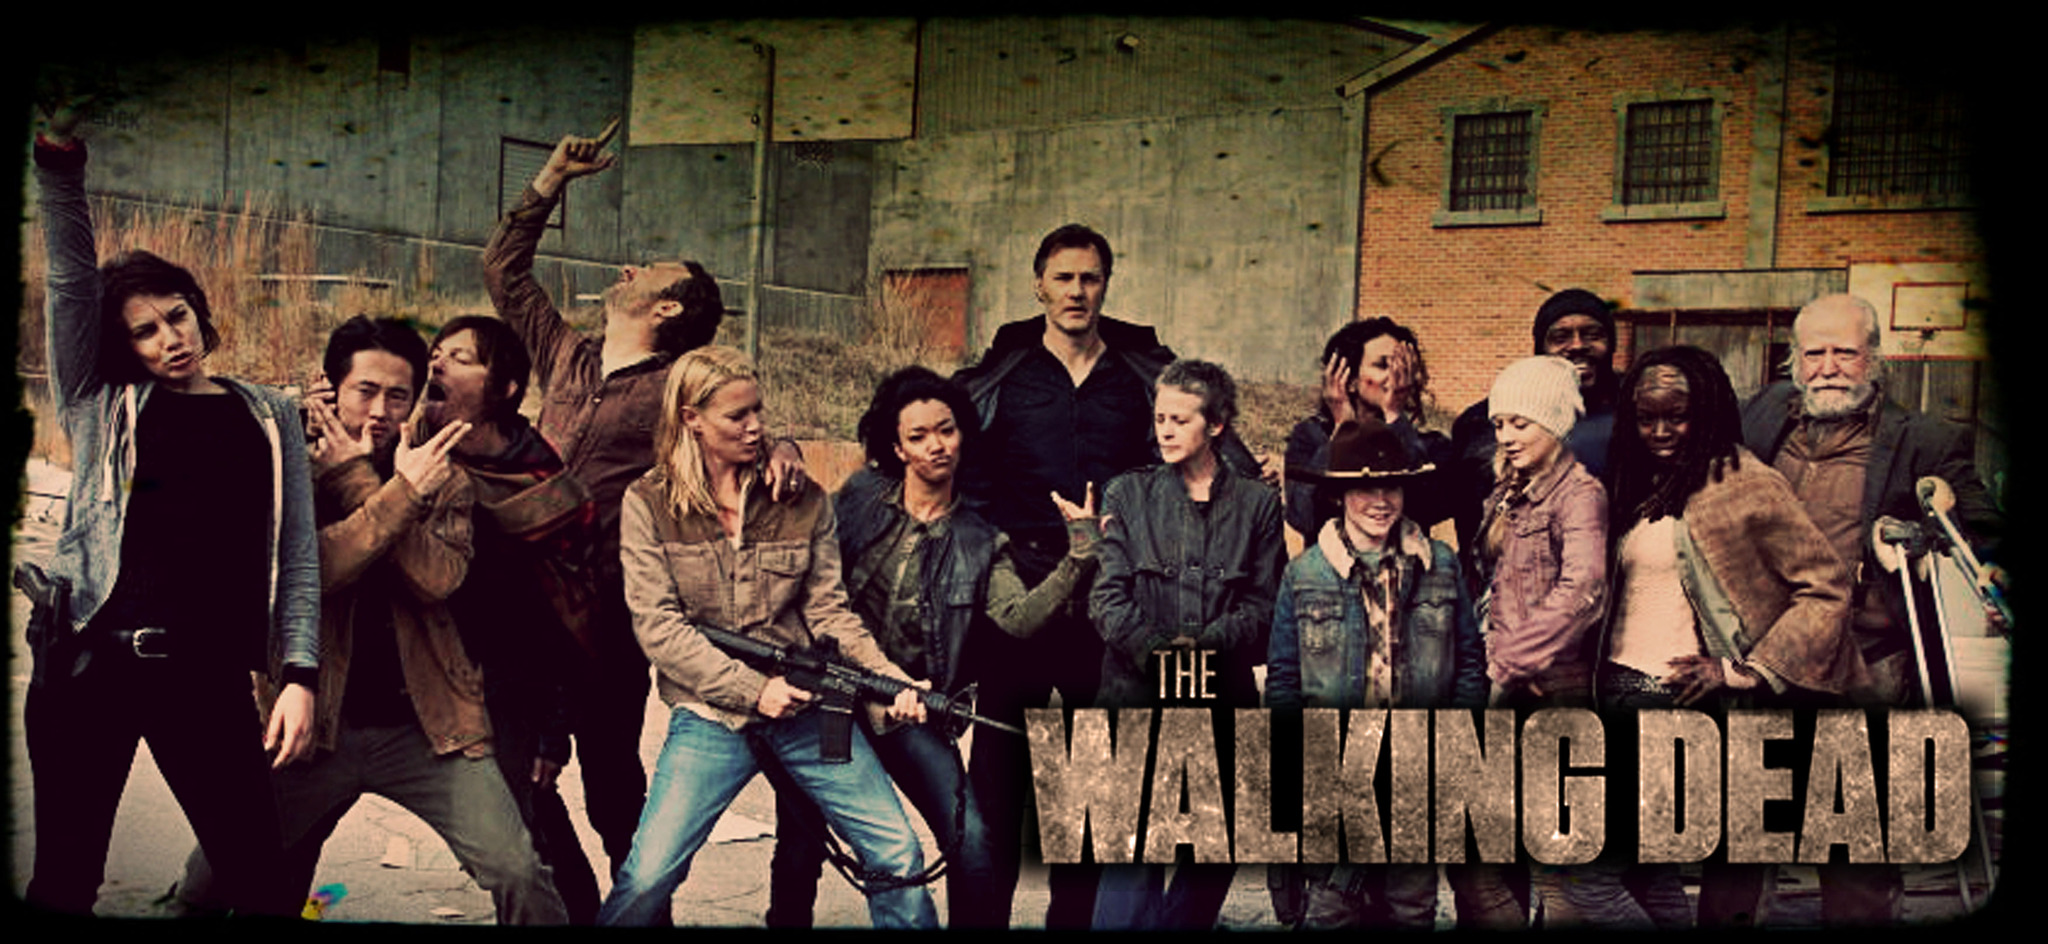 The Walking Dead Temporada 6 Cartel Fondos Fondos De: Walking Dead ...